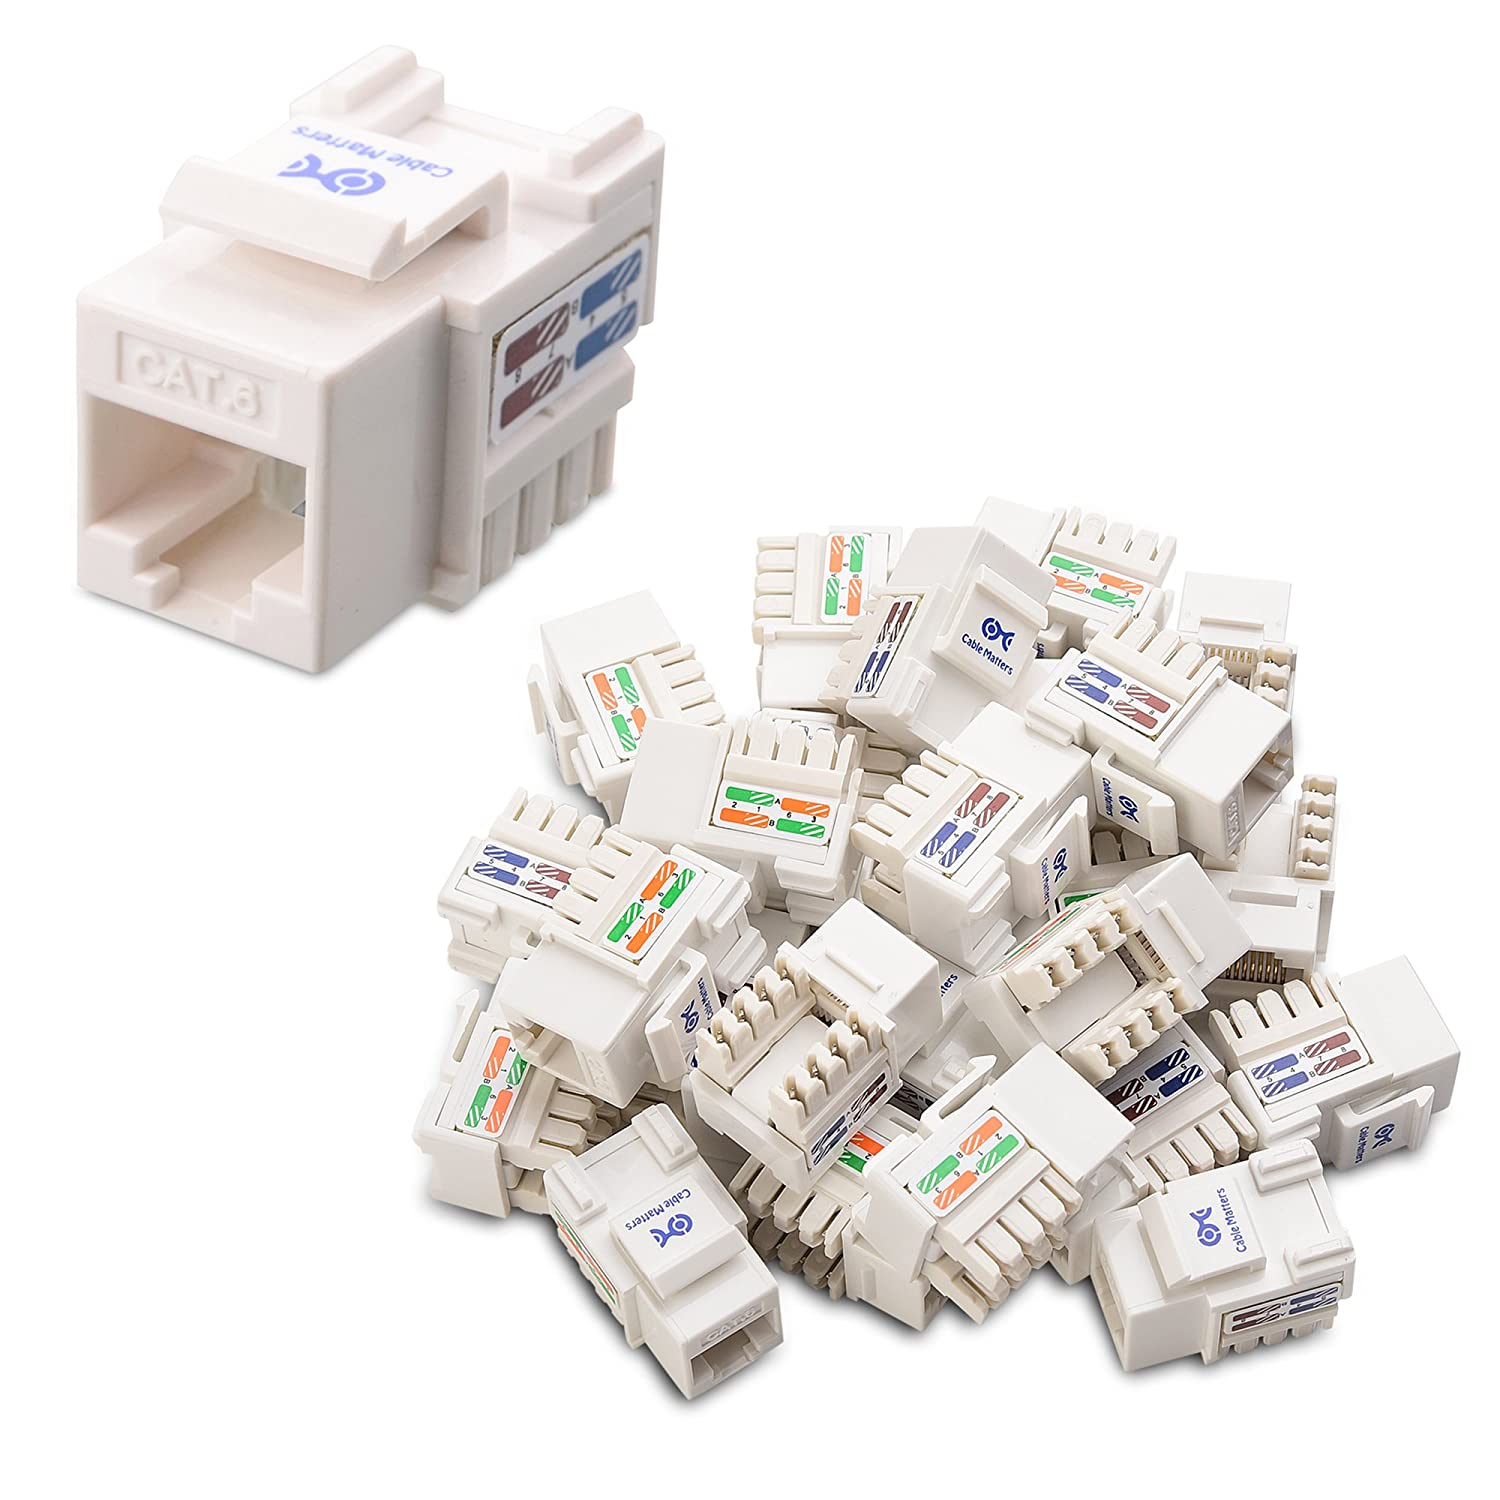 Cable Matters Ul Listed 25 Pack Cat6 Rj45 Keystone Wiring Diagram How To Wire Your House With Cat5e Or Jack In White And Punch Down Stand Computers Accessories